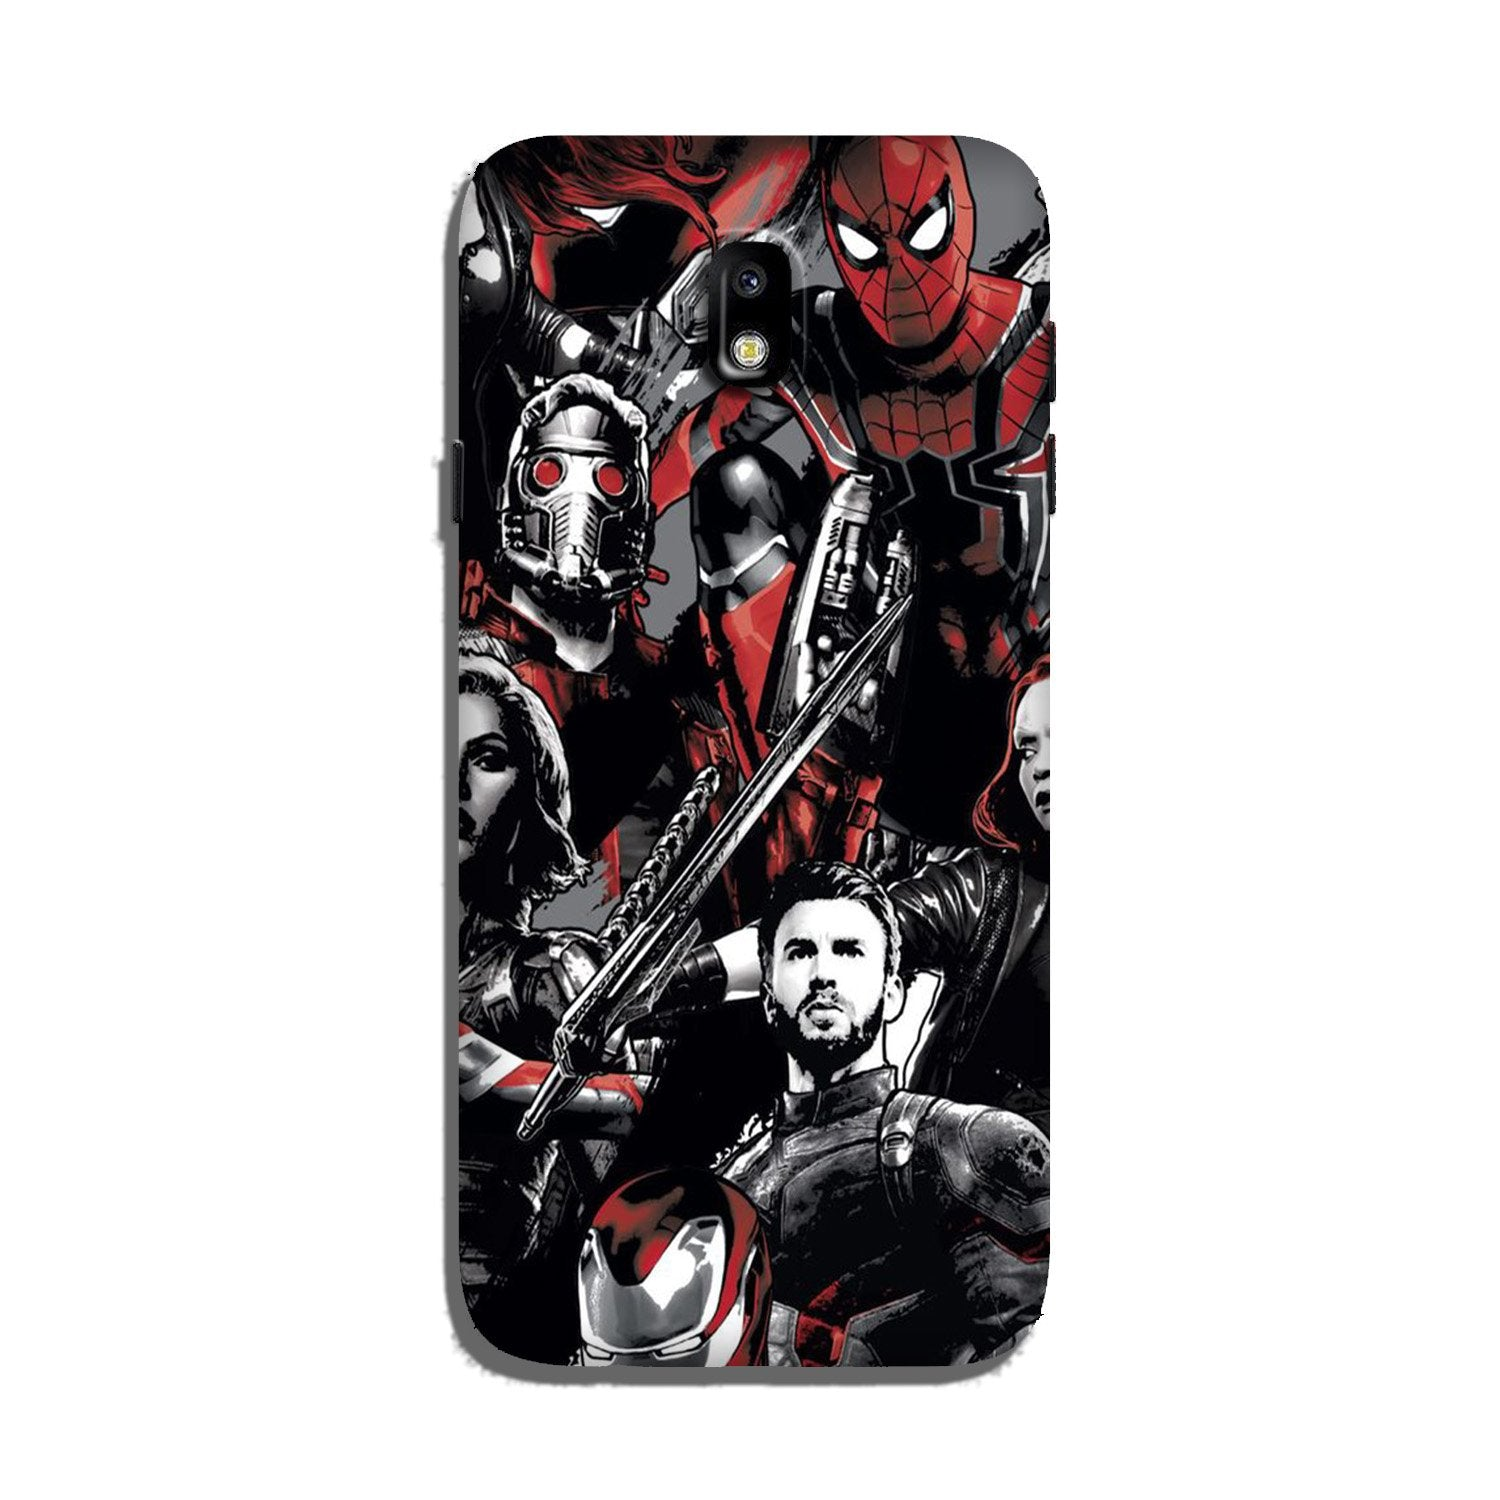 Avengers Case for Galaxy J5 Pro (Design - 190)